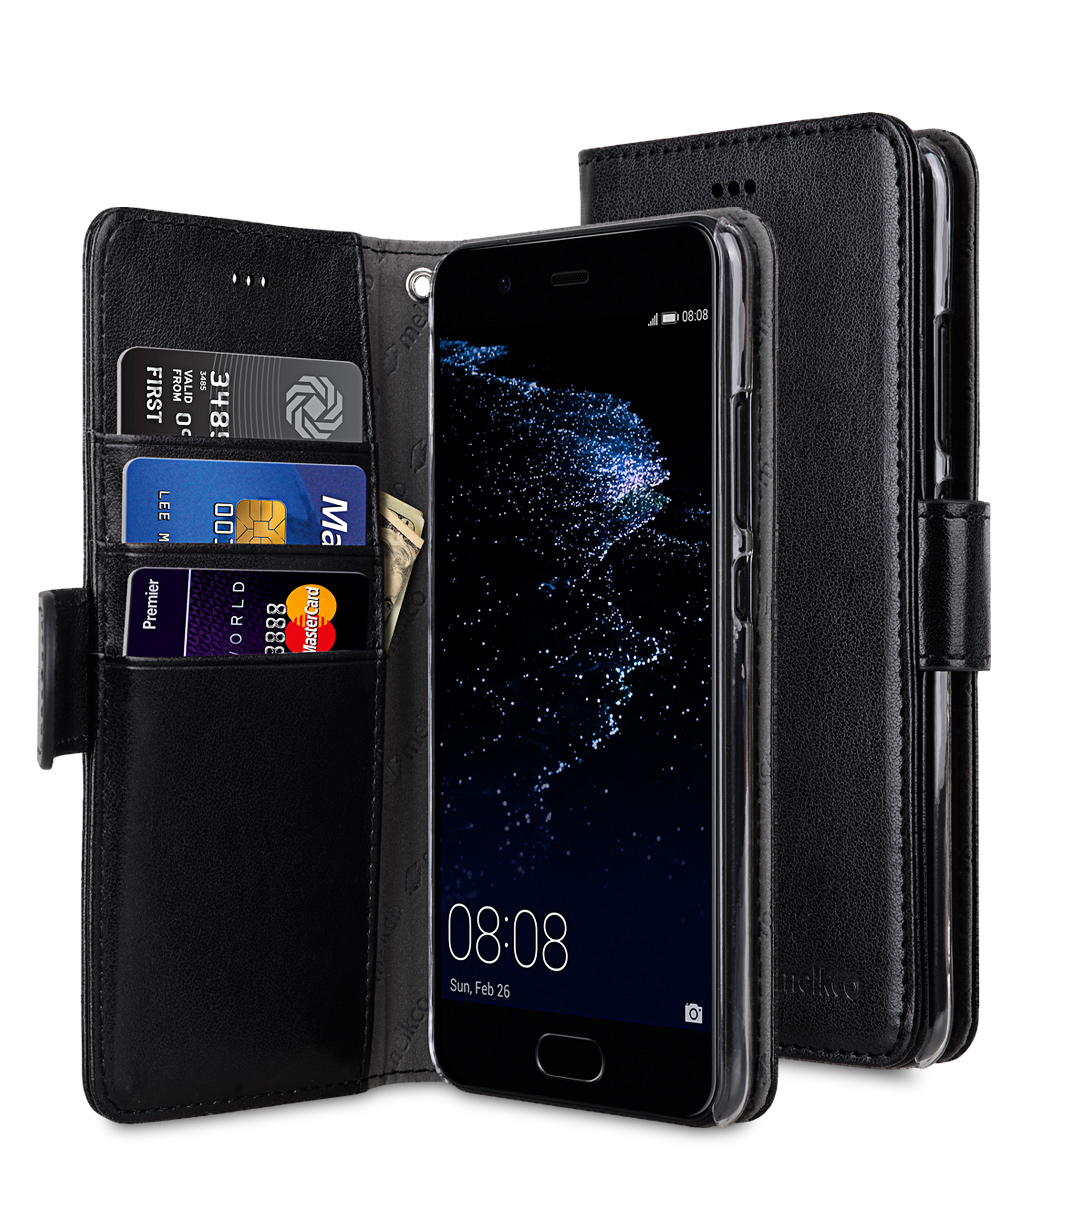 outlet store a85e8 26440 PU Cases Wallet Book Clear Type for Huawei P10 - Black PU